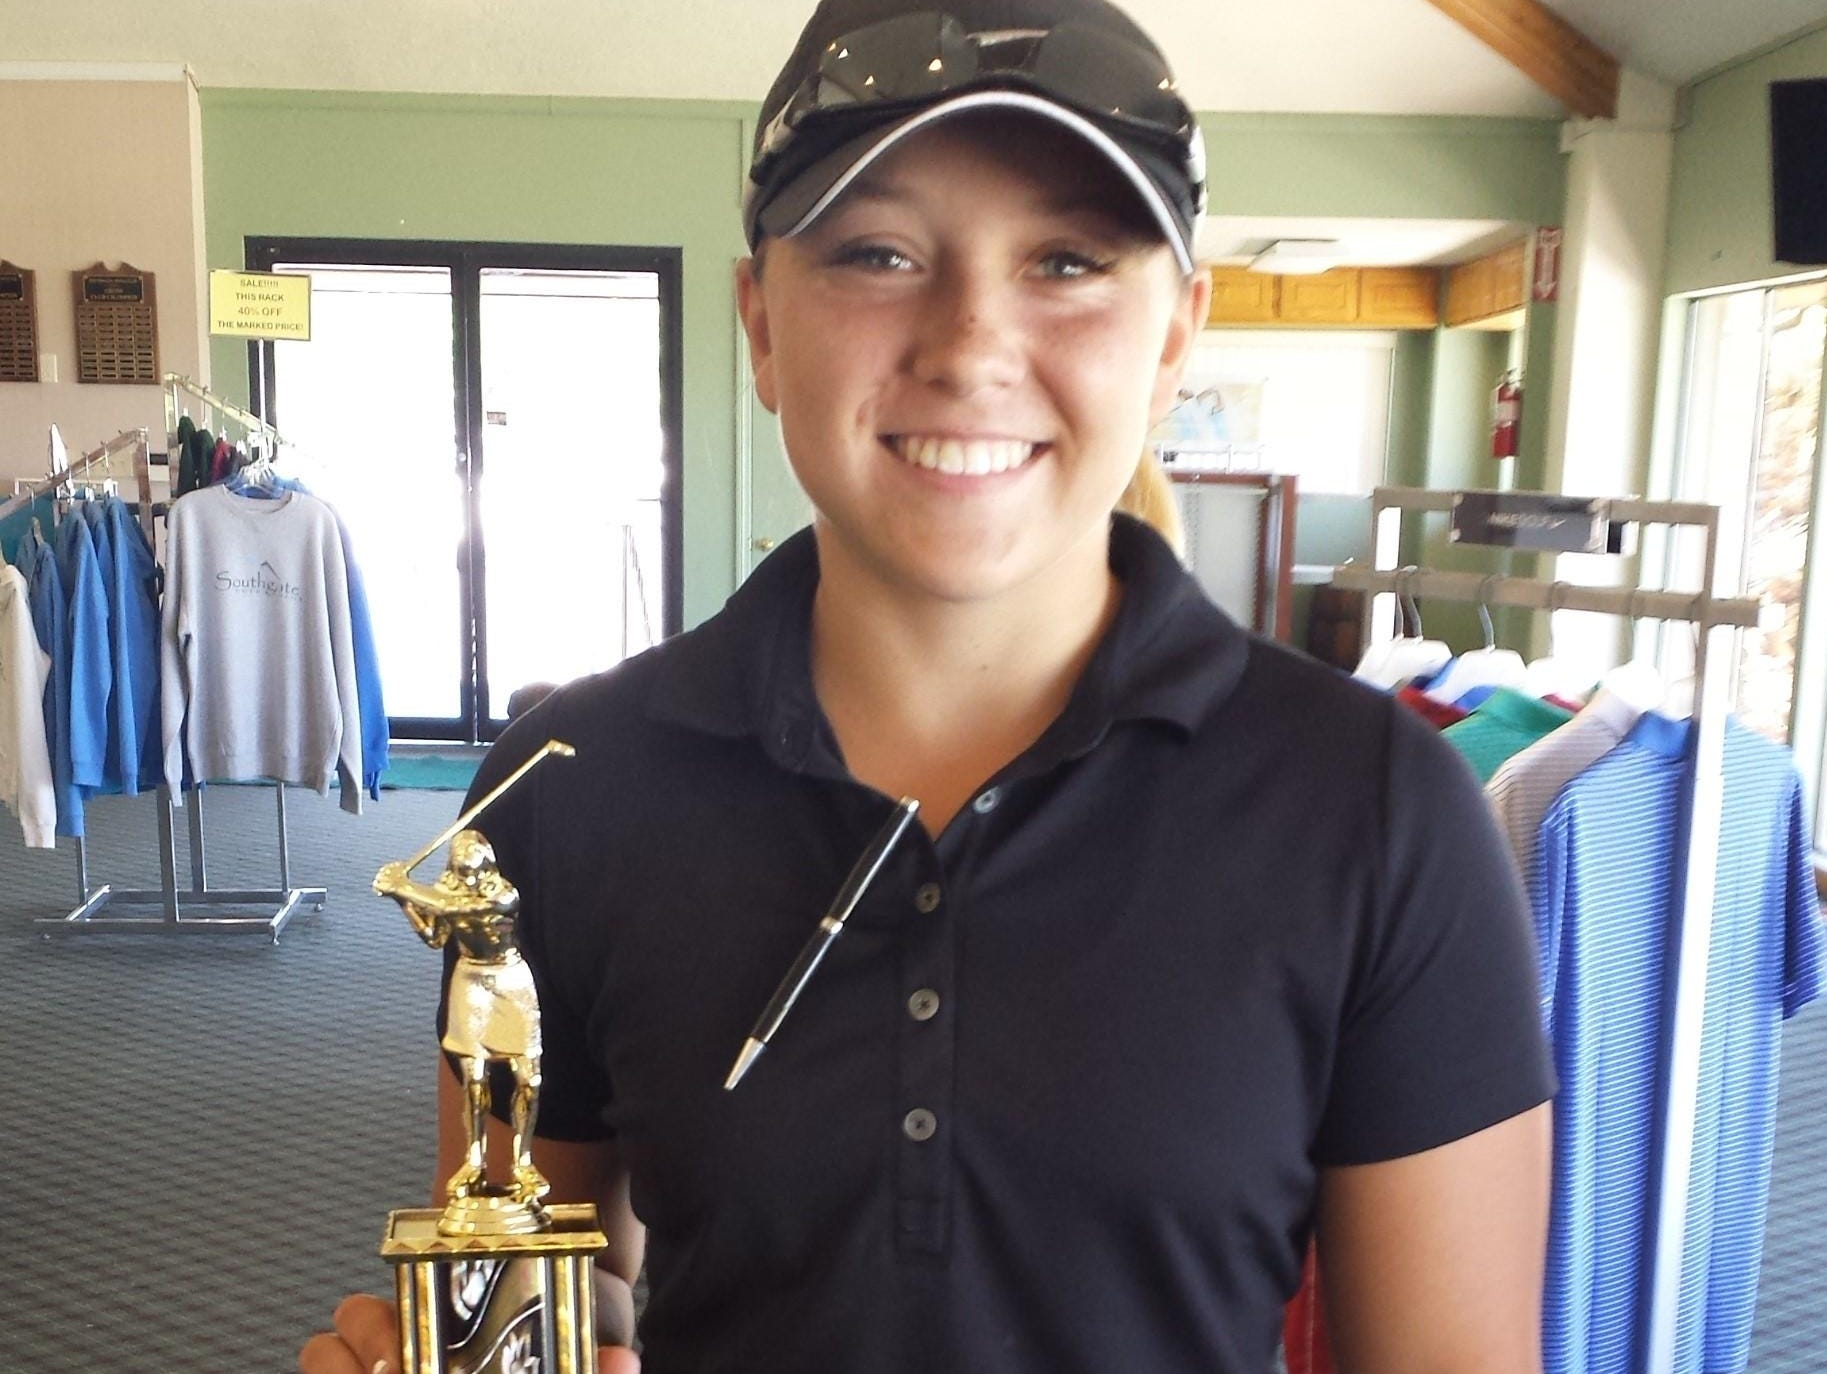 Pine View's Taylor Bandley secured a first round bye after edging out Snow Canyon's Lexi Hamel by one stroke at Southgate Golf Club on Tuesday.